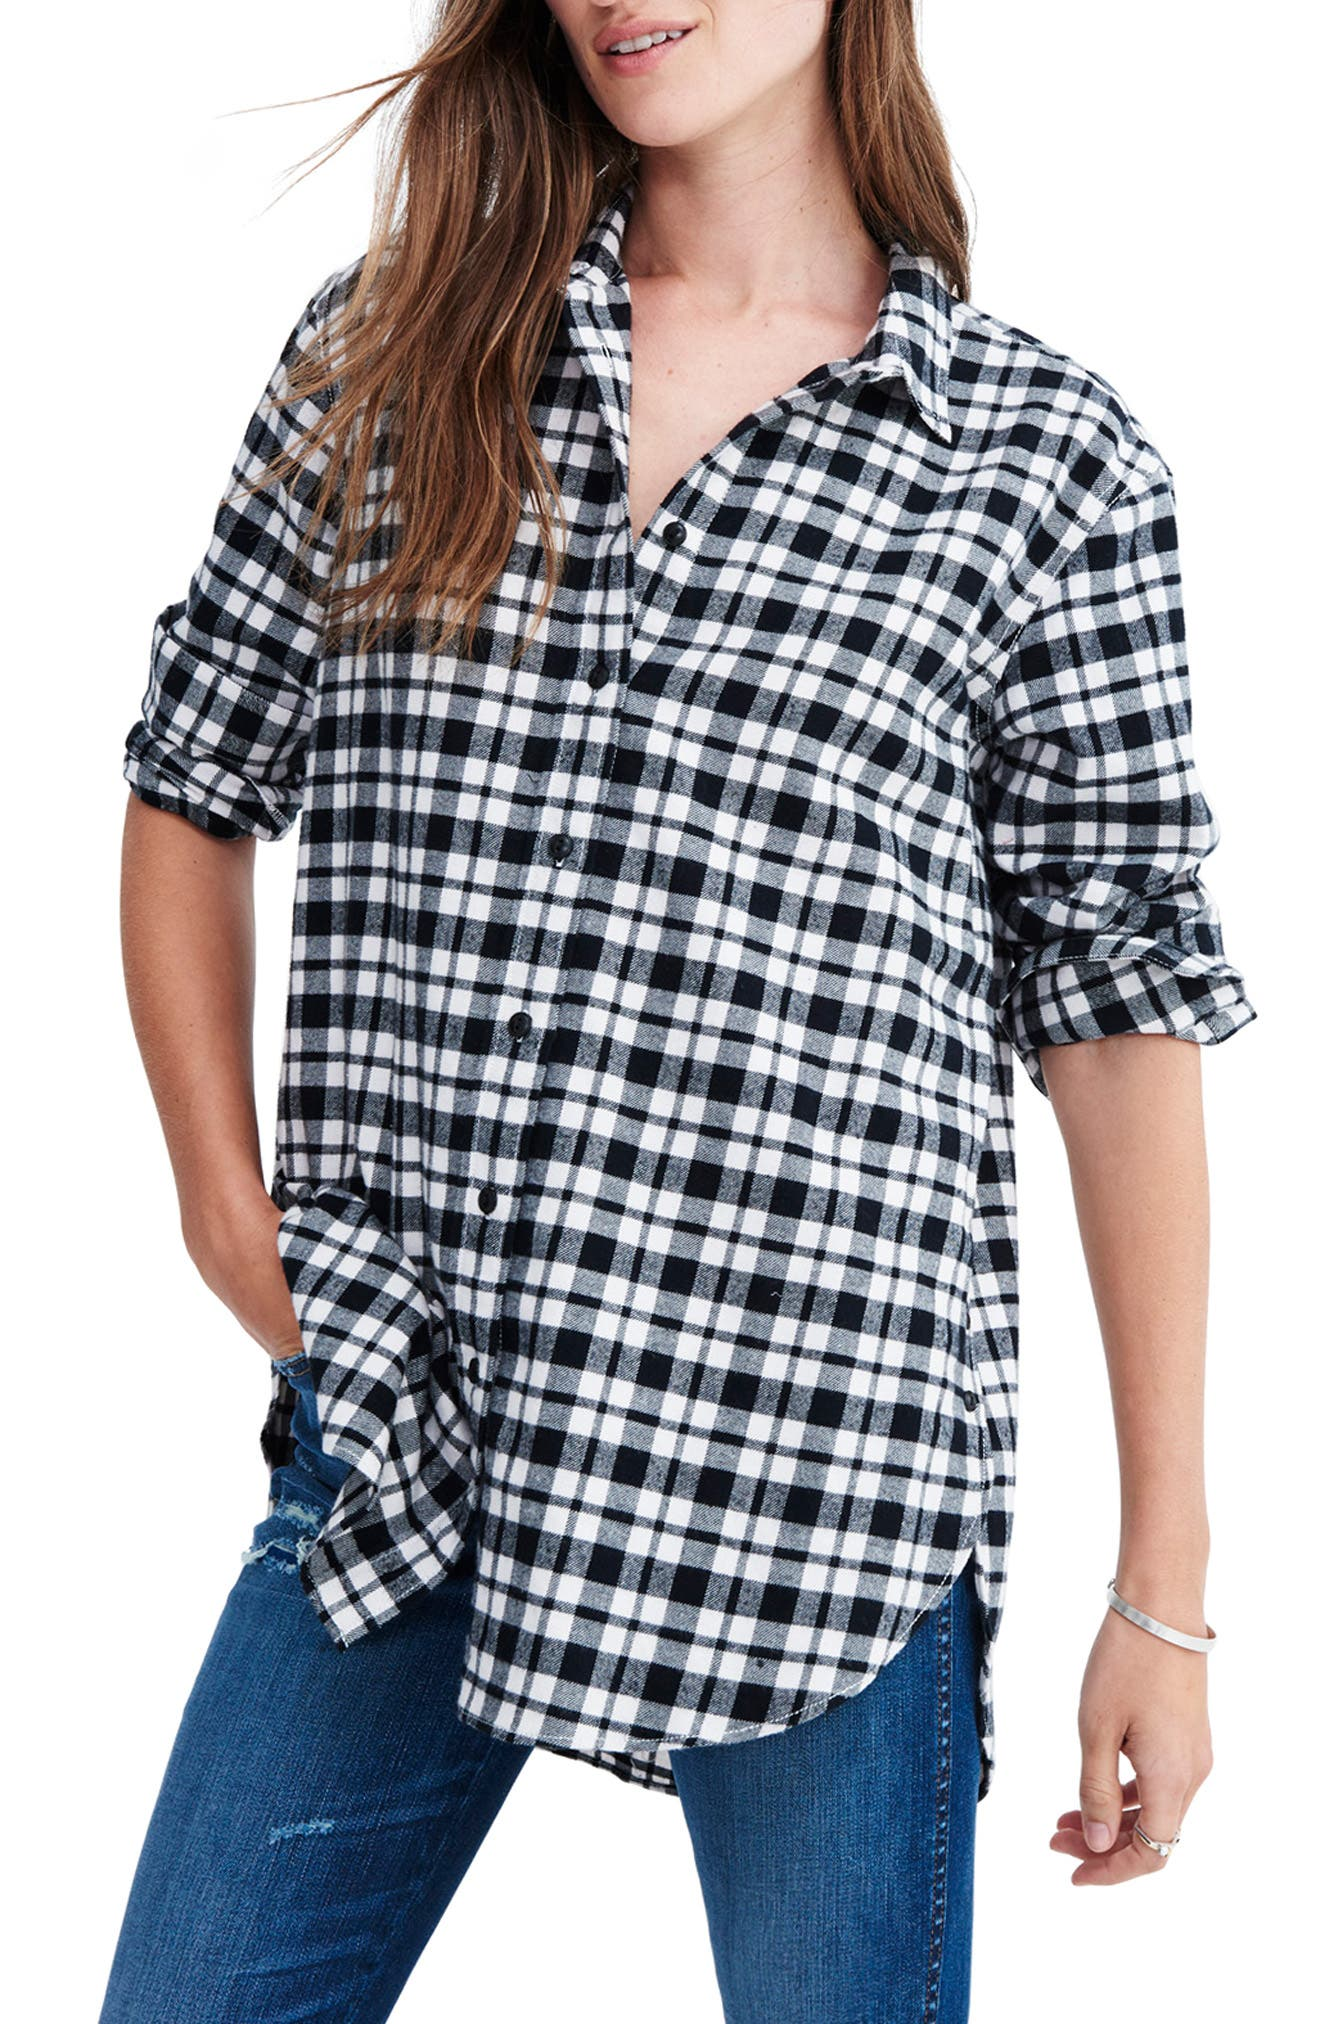 MADEWELL, Oversize Flannel Shirt, Main thumbnail 1, color, 002